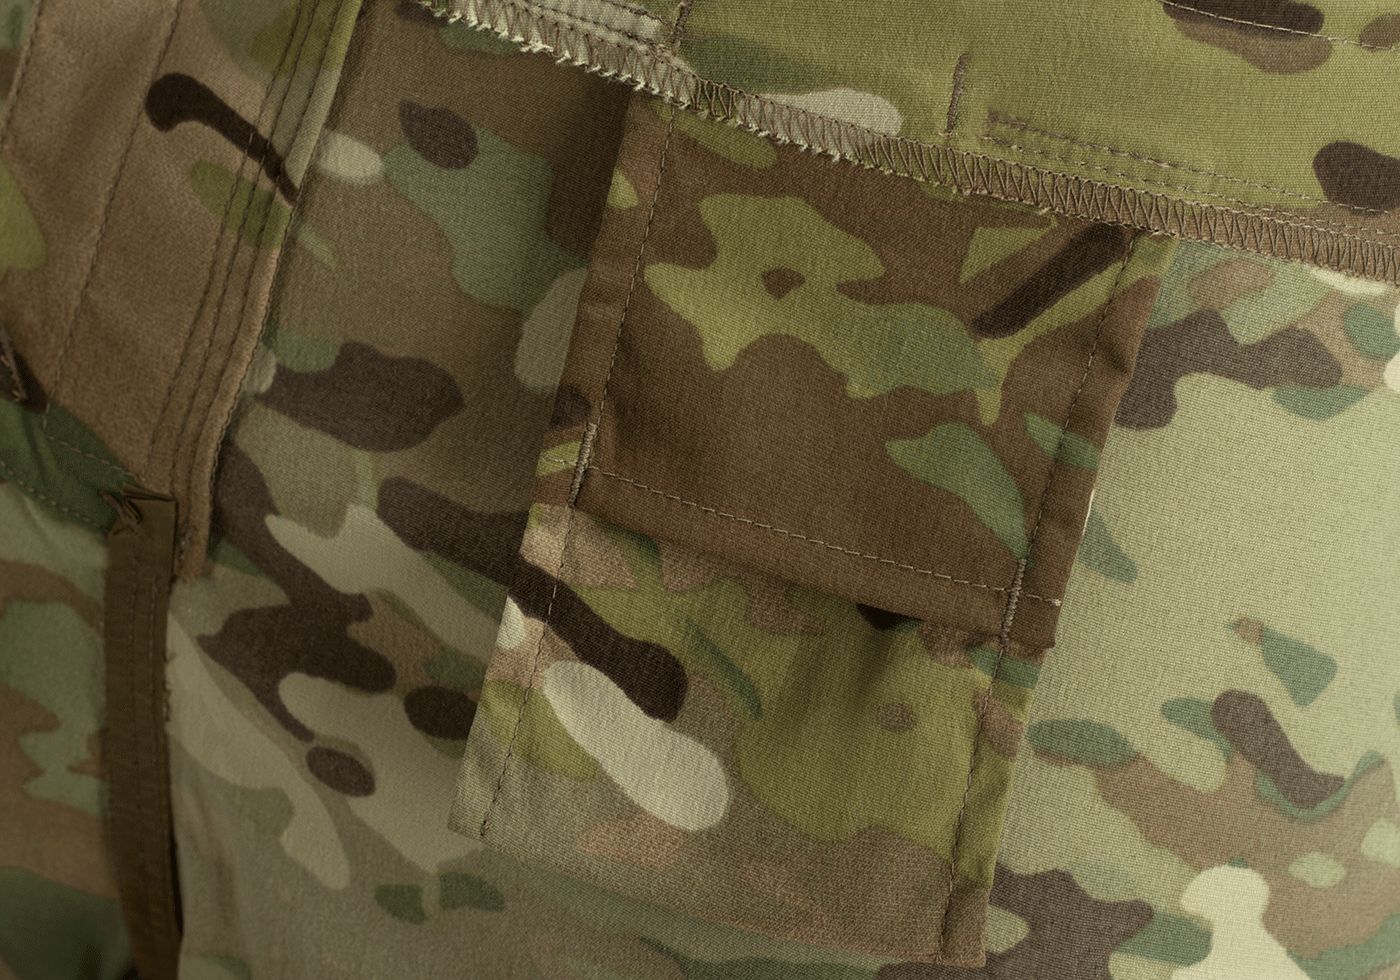 6684b6f197 Off-Duty Shorts Multicam S - Shorts - Garments - clawgear.com Online shop